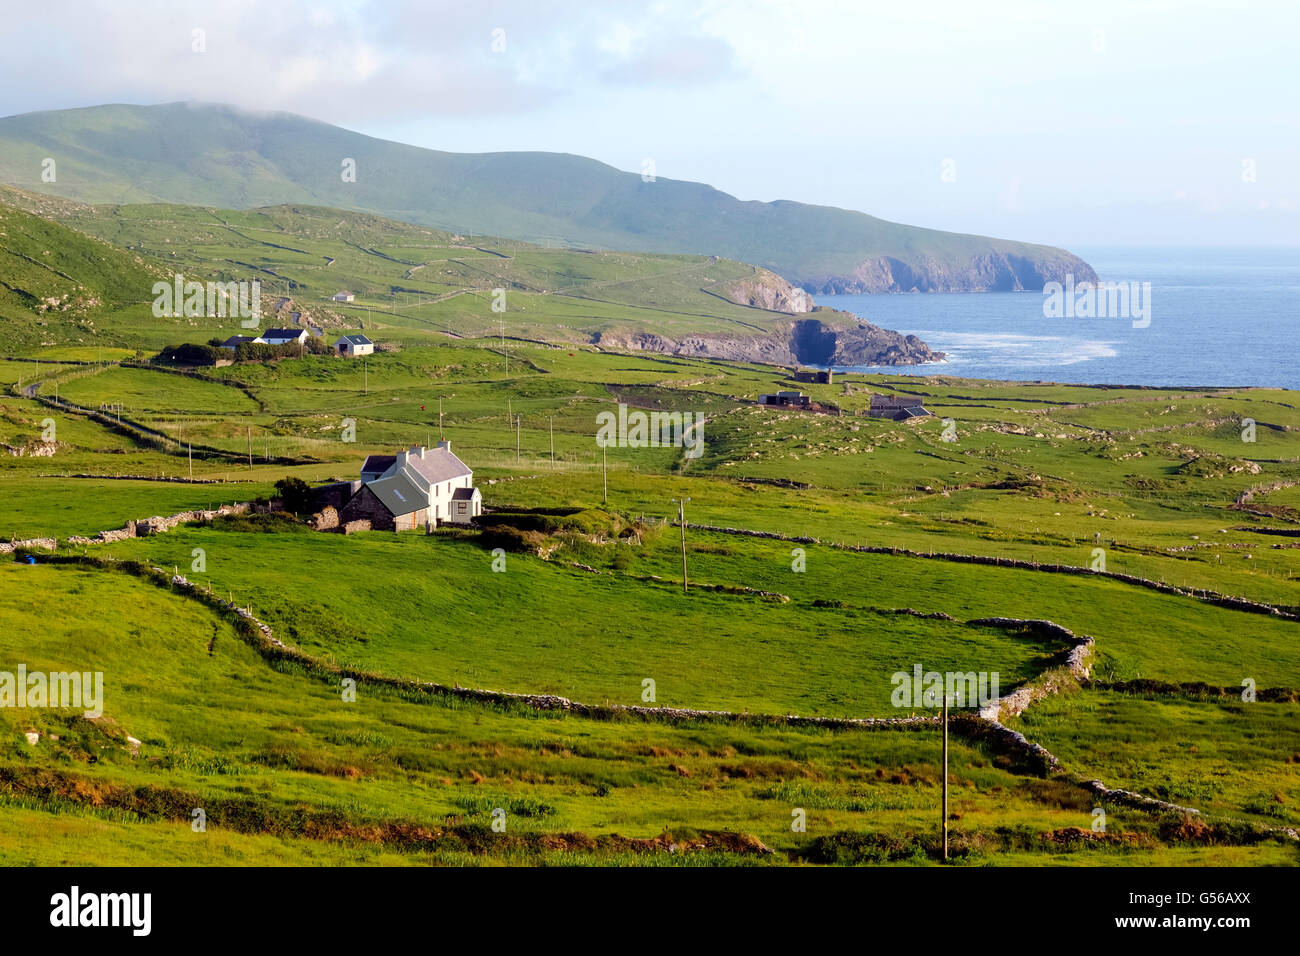 Skellig Ring, Ring of Kerry, County Kerry, Ireland - Stock Image